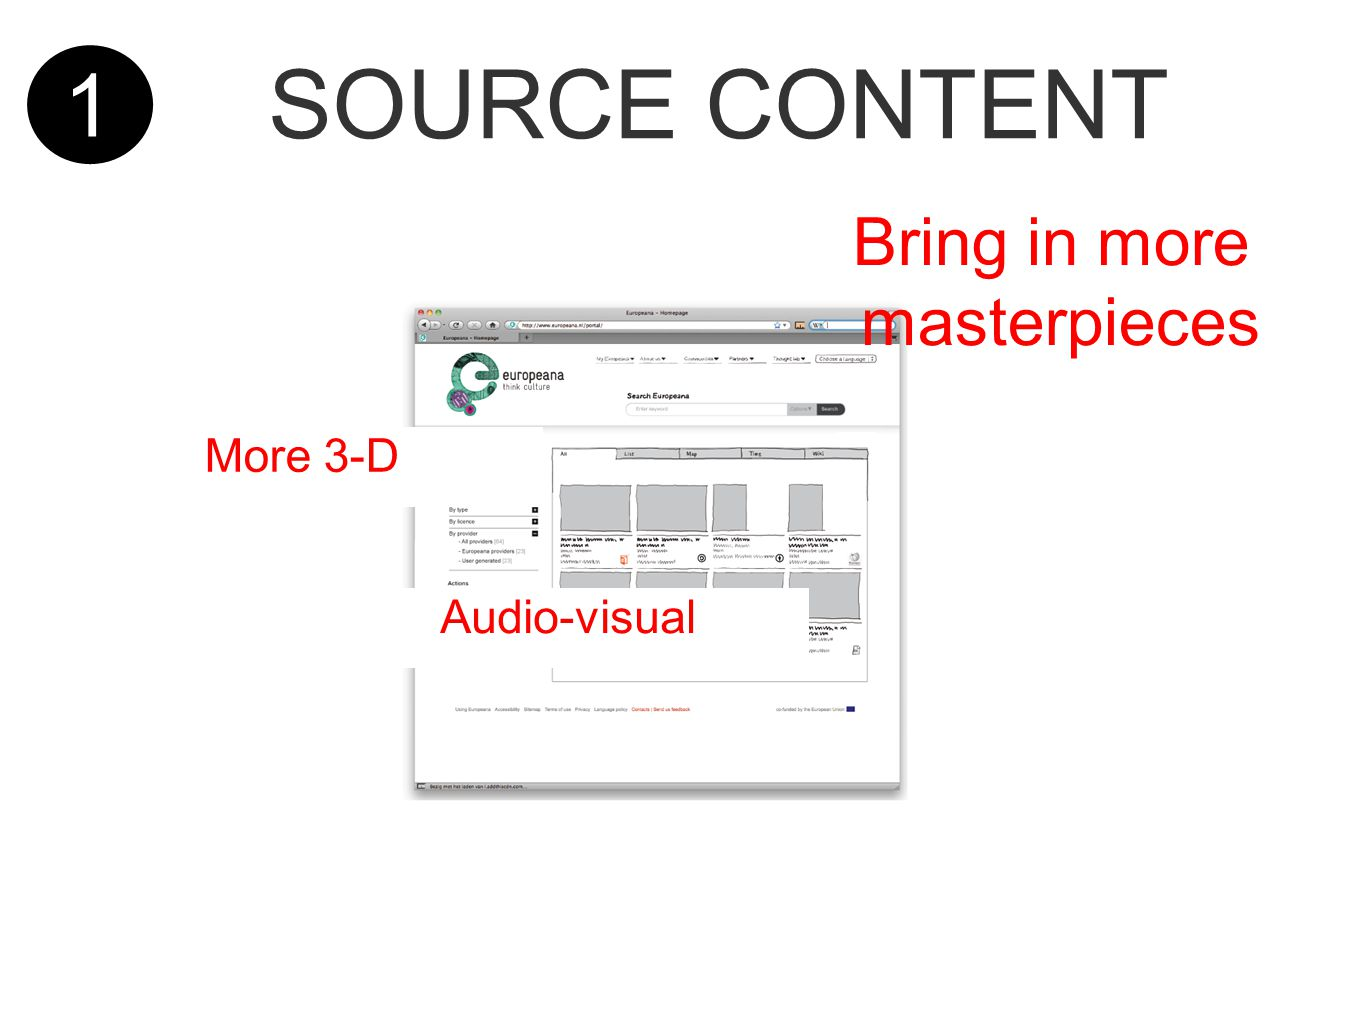 1 SOURCE CONTENT Bring in more masterpieces More 3-D Audio-visual